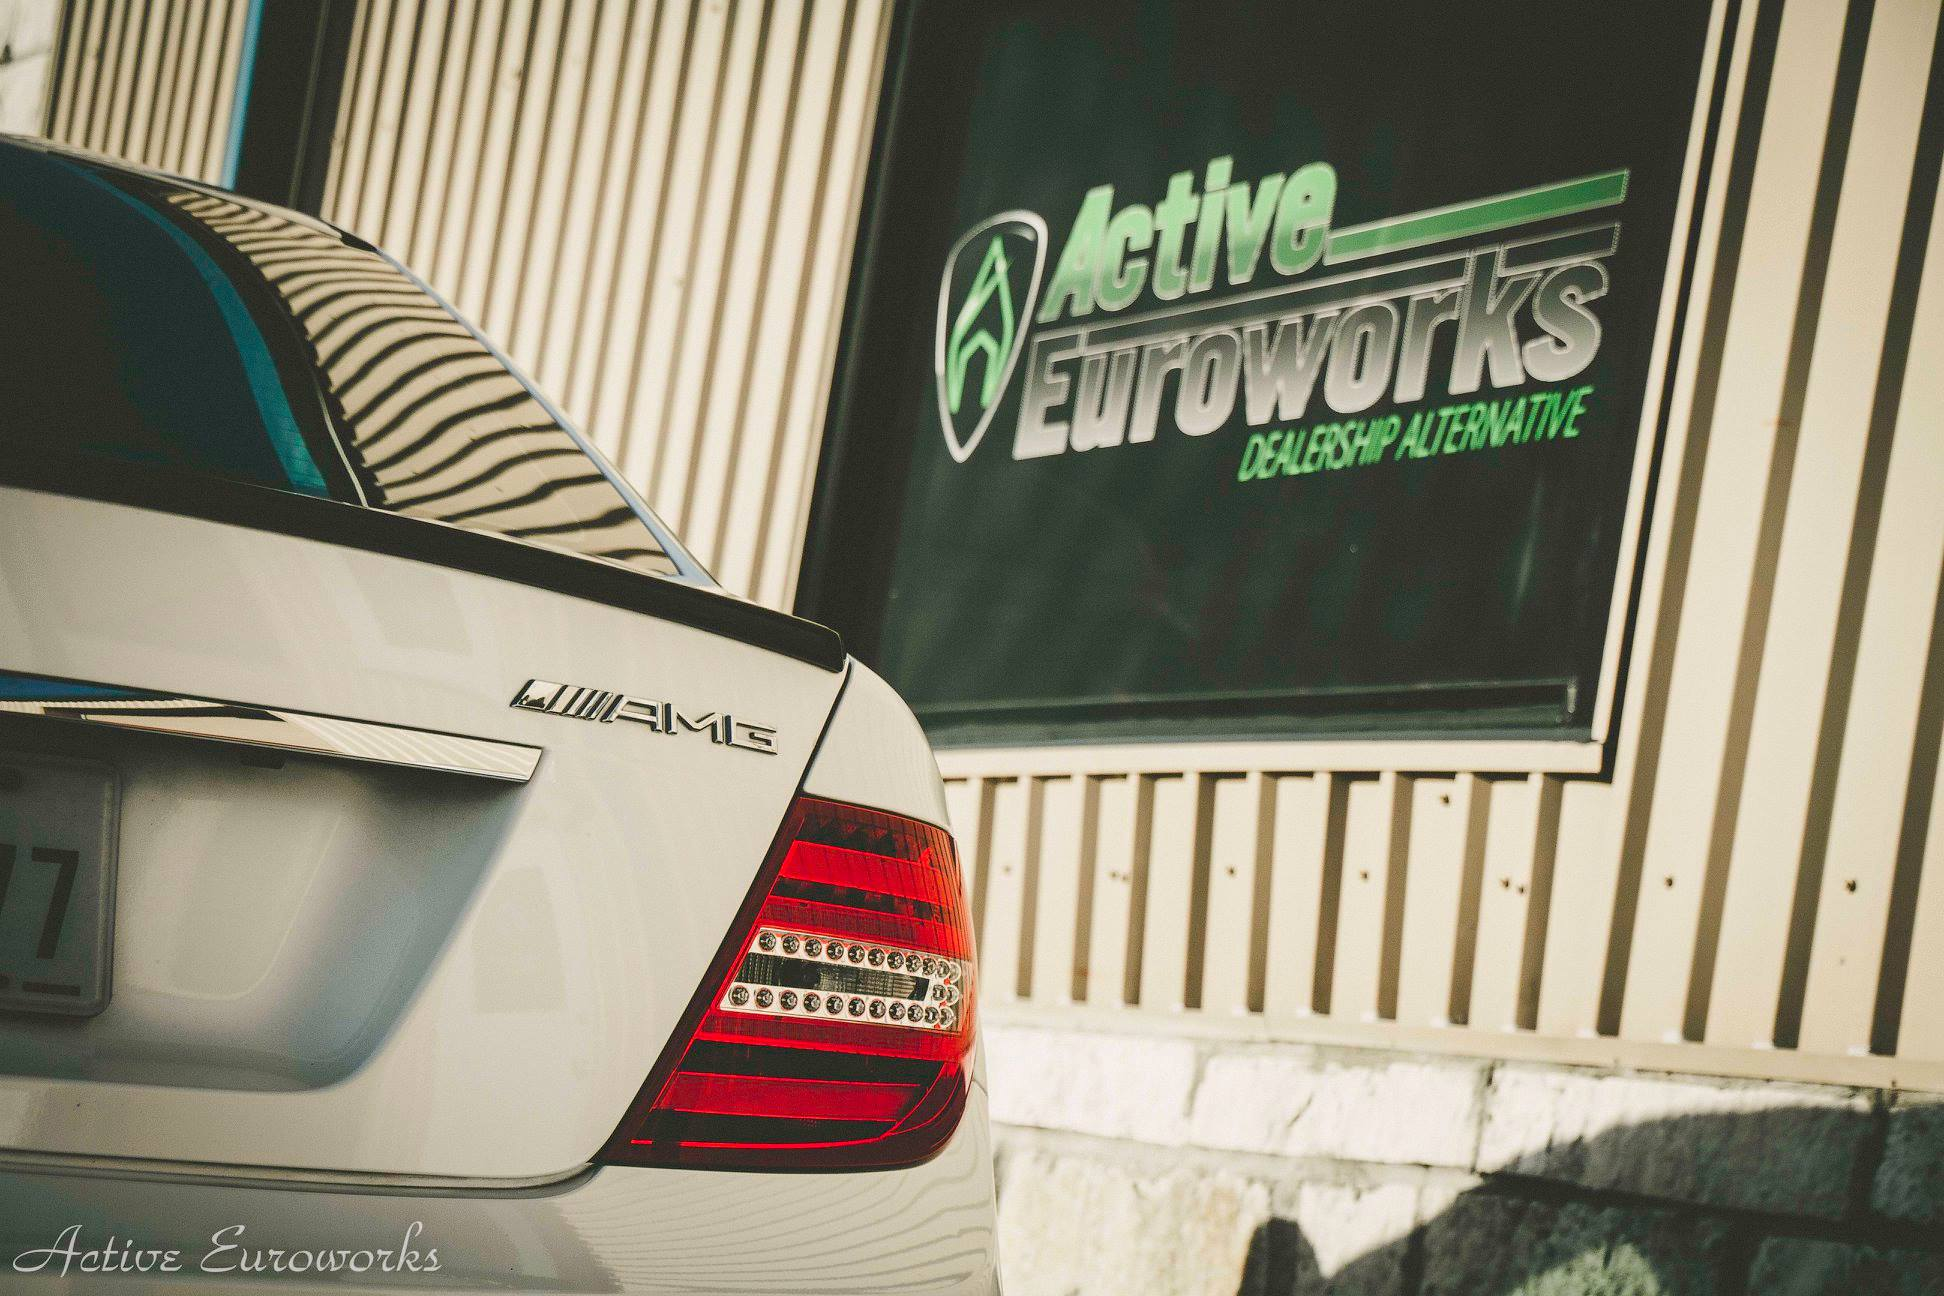 Mercedez-Benz-Infront-of-Active-Euroworks